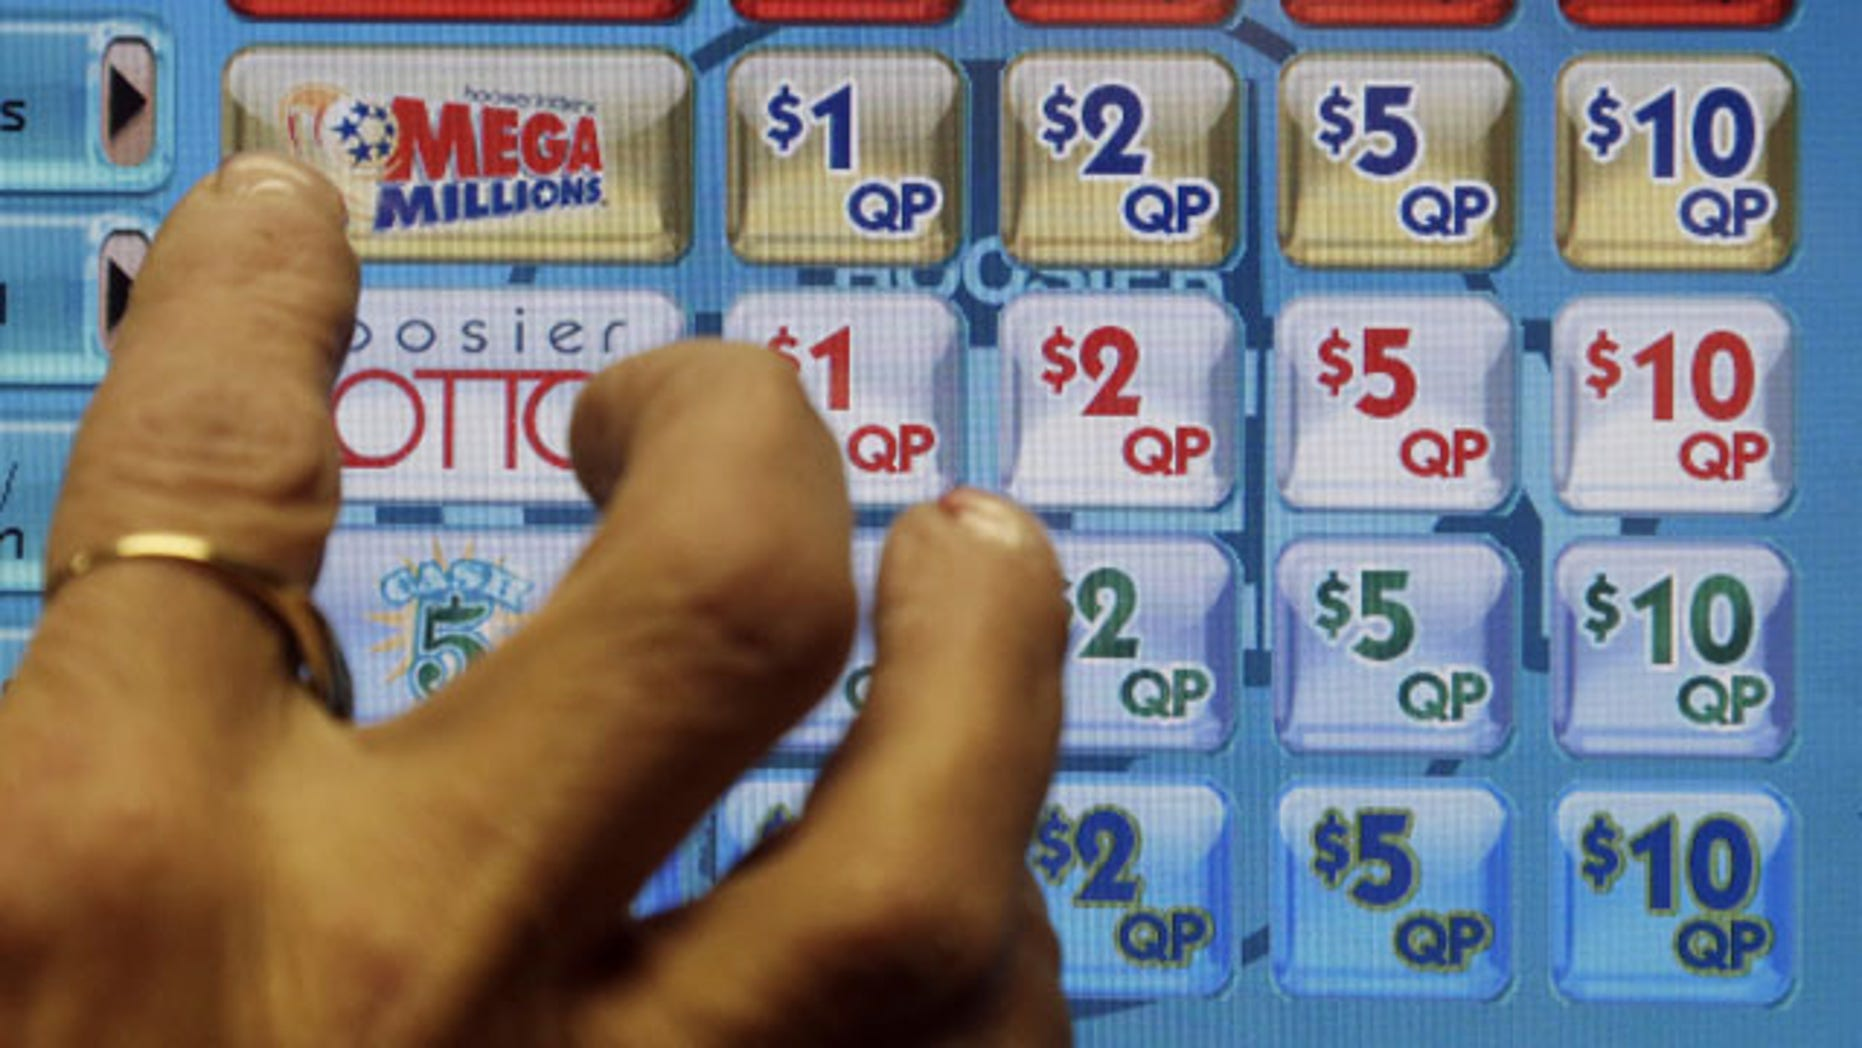 December 17, 2013: A clerk prepares to operate a lottery machine to print out Mega Millions lottery tickets for a customer in Muncie, Ind. The March 18, 2014 estimated $400 million Mega Millions jackpot could potentially be the sixth-largest in lottery prize in U.S. history. (AP Photo/Darron Cummings, File)